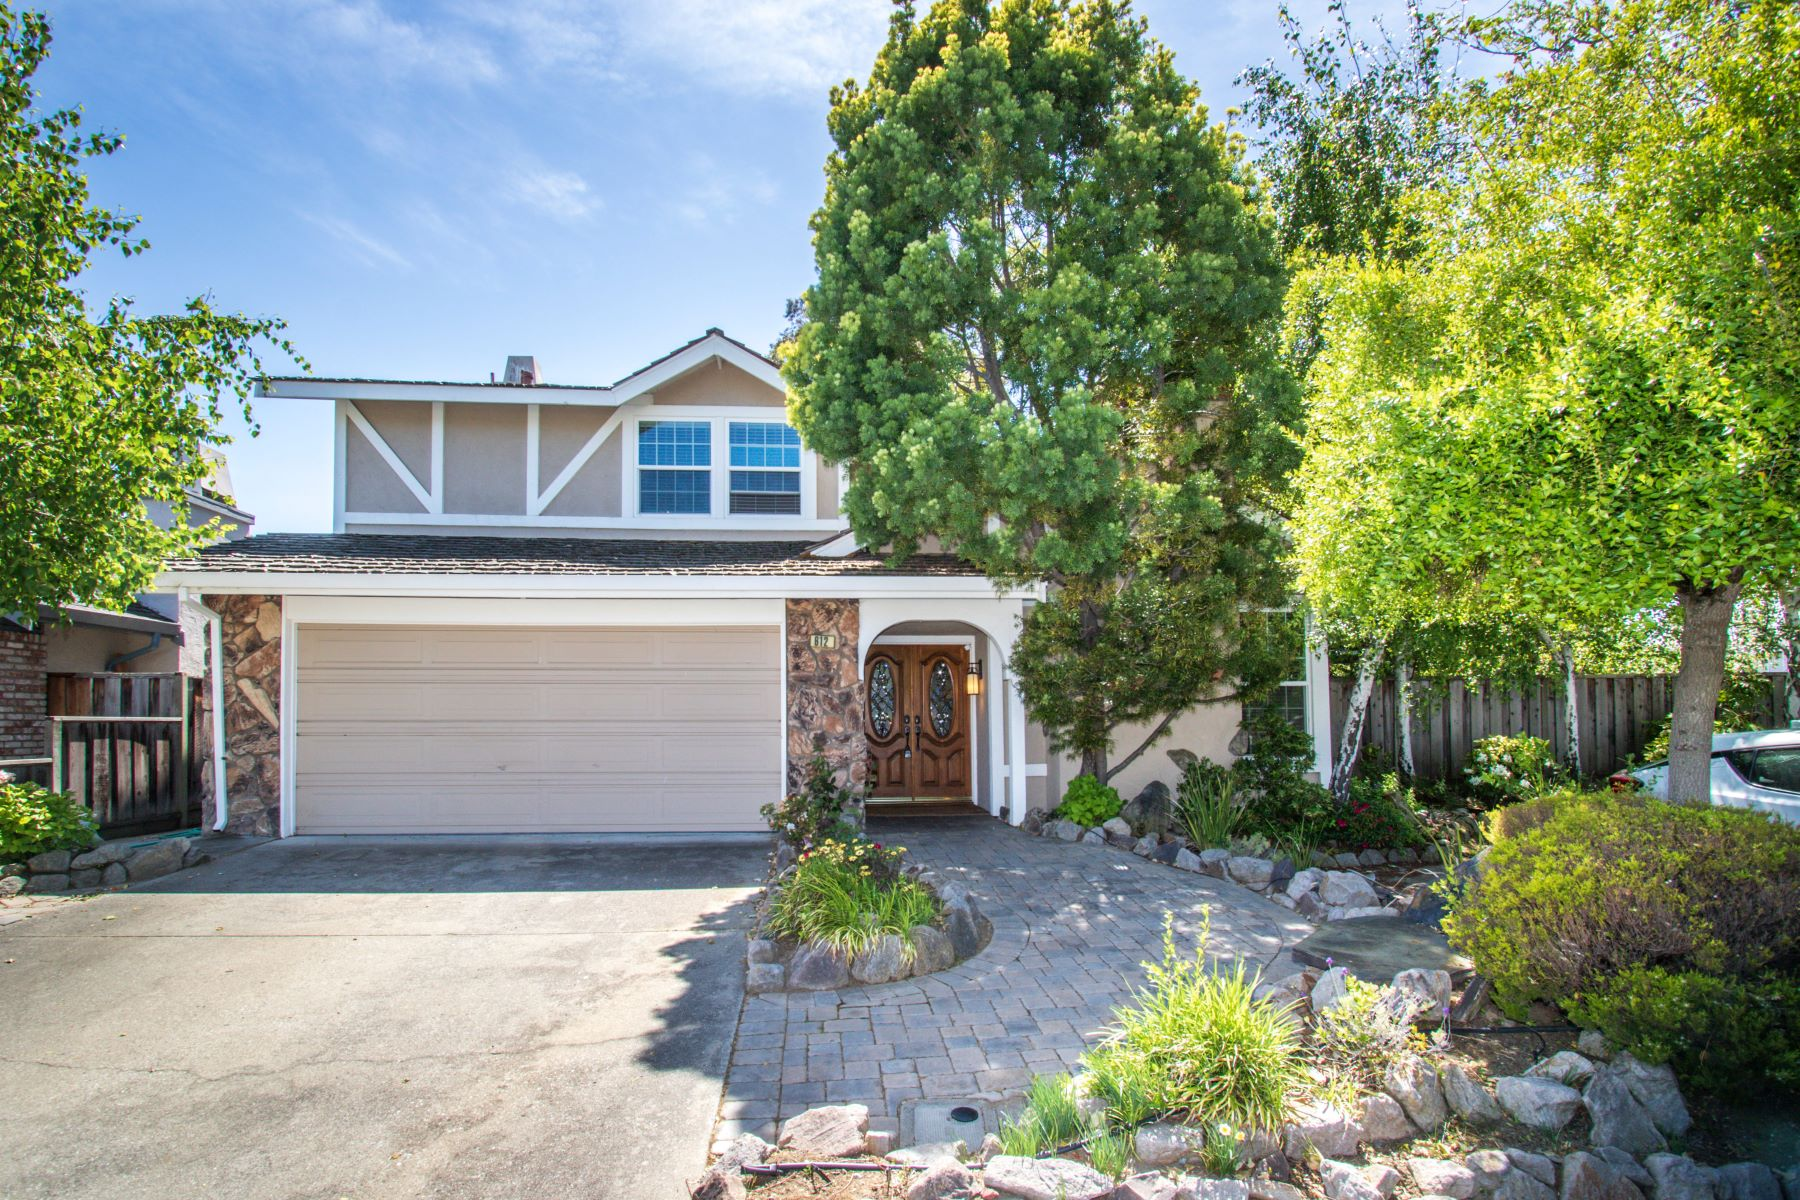 Single Family Homes for Sale at Stunning Sea Colony Home! 612 Cornwallis Lane Foster City, California 94404 United States